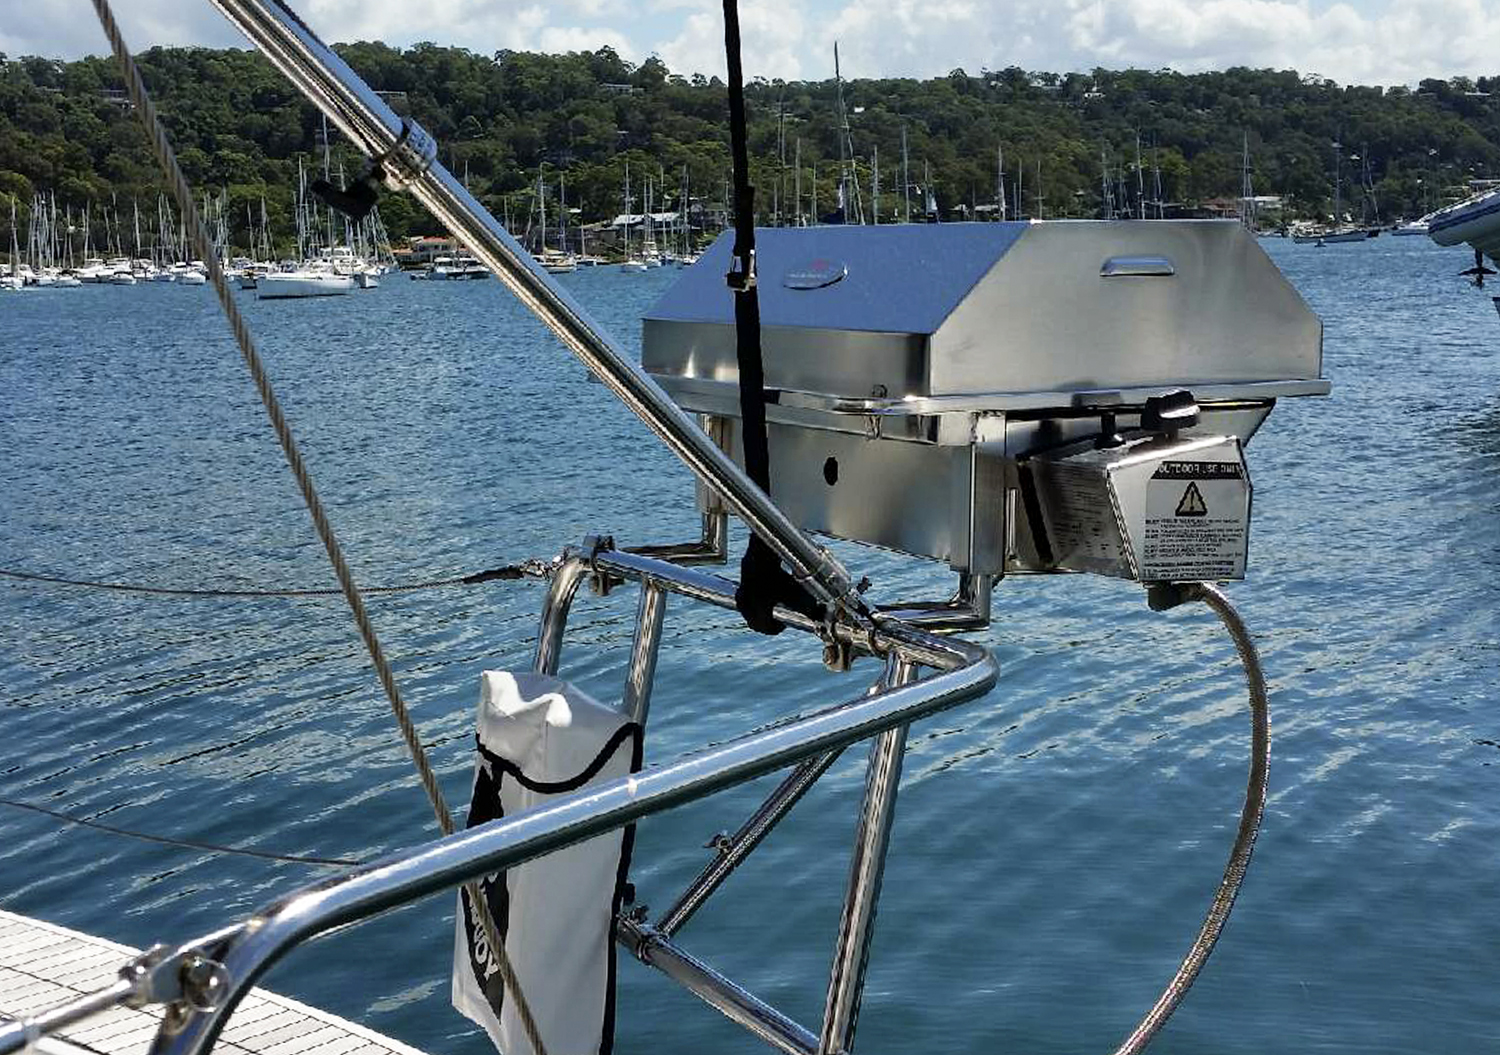 Stainless steel gas boat bqq on yacht with clamp on rail mounts and support arm